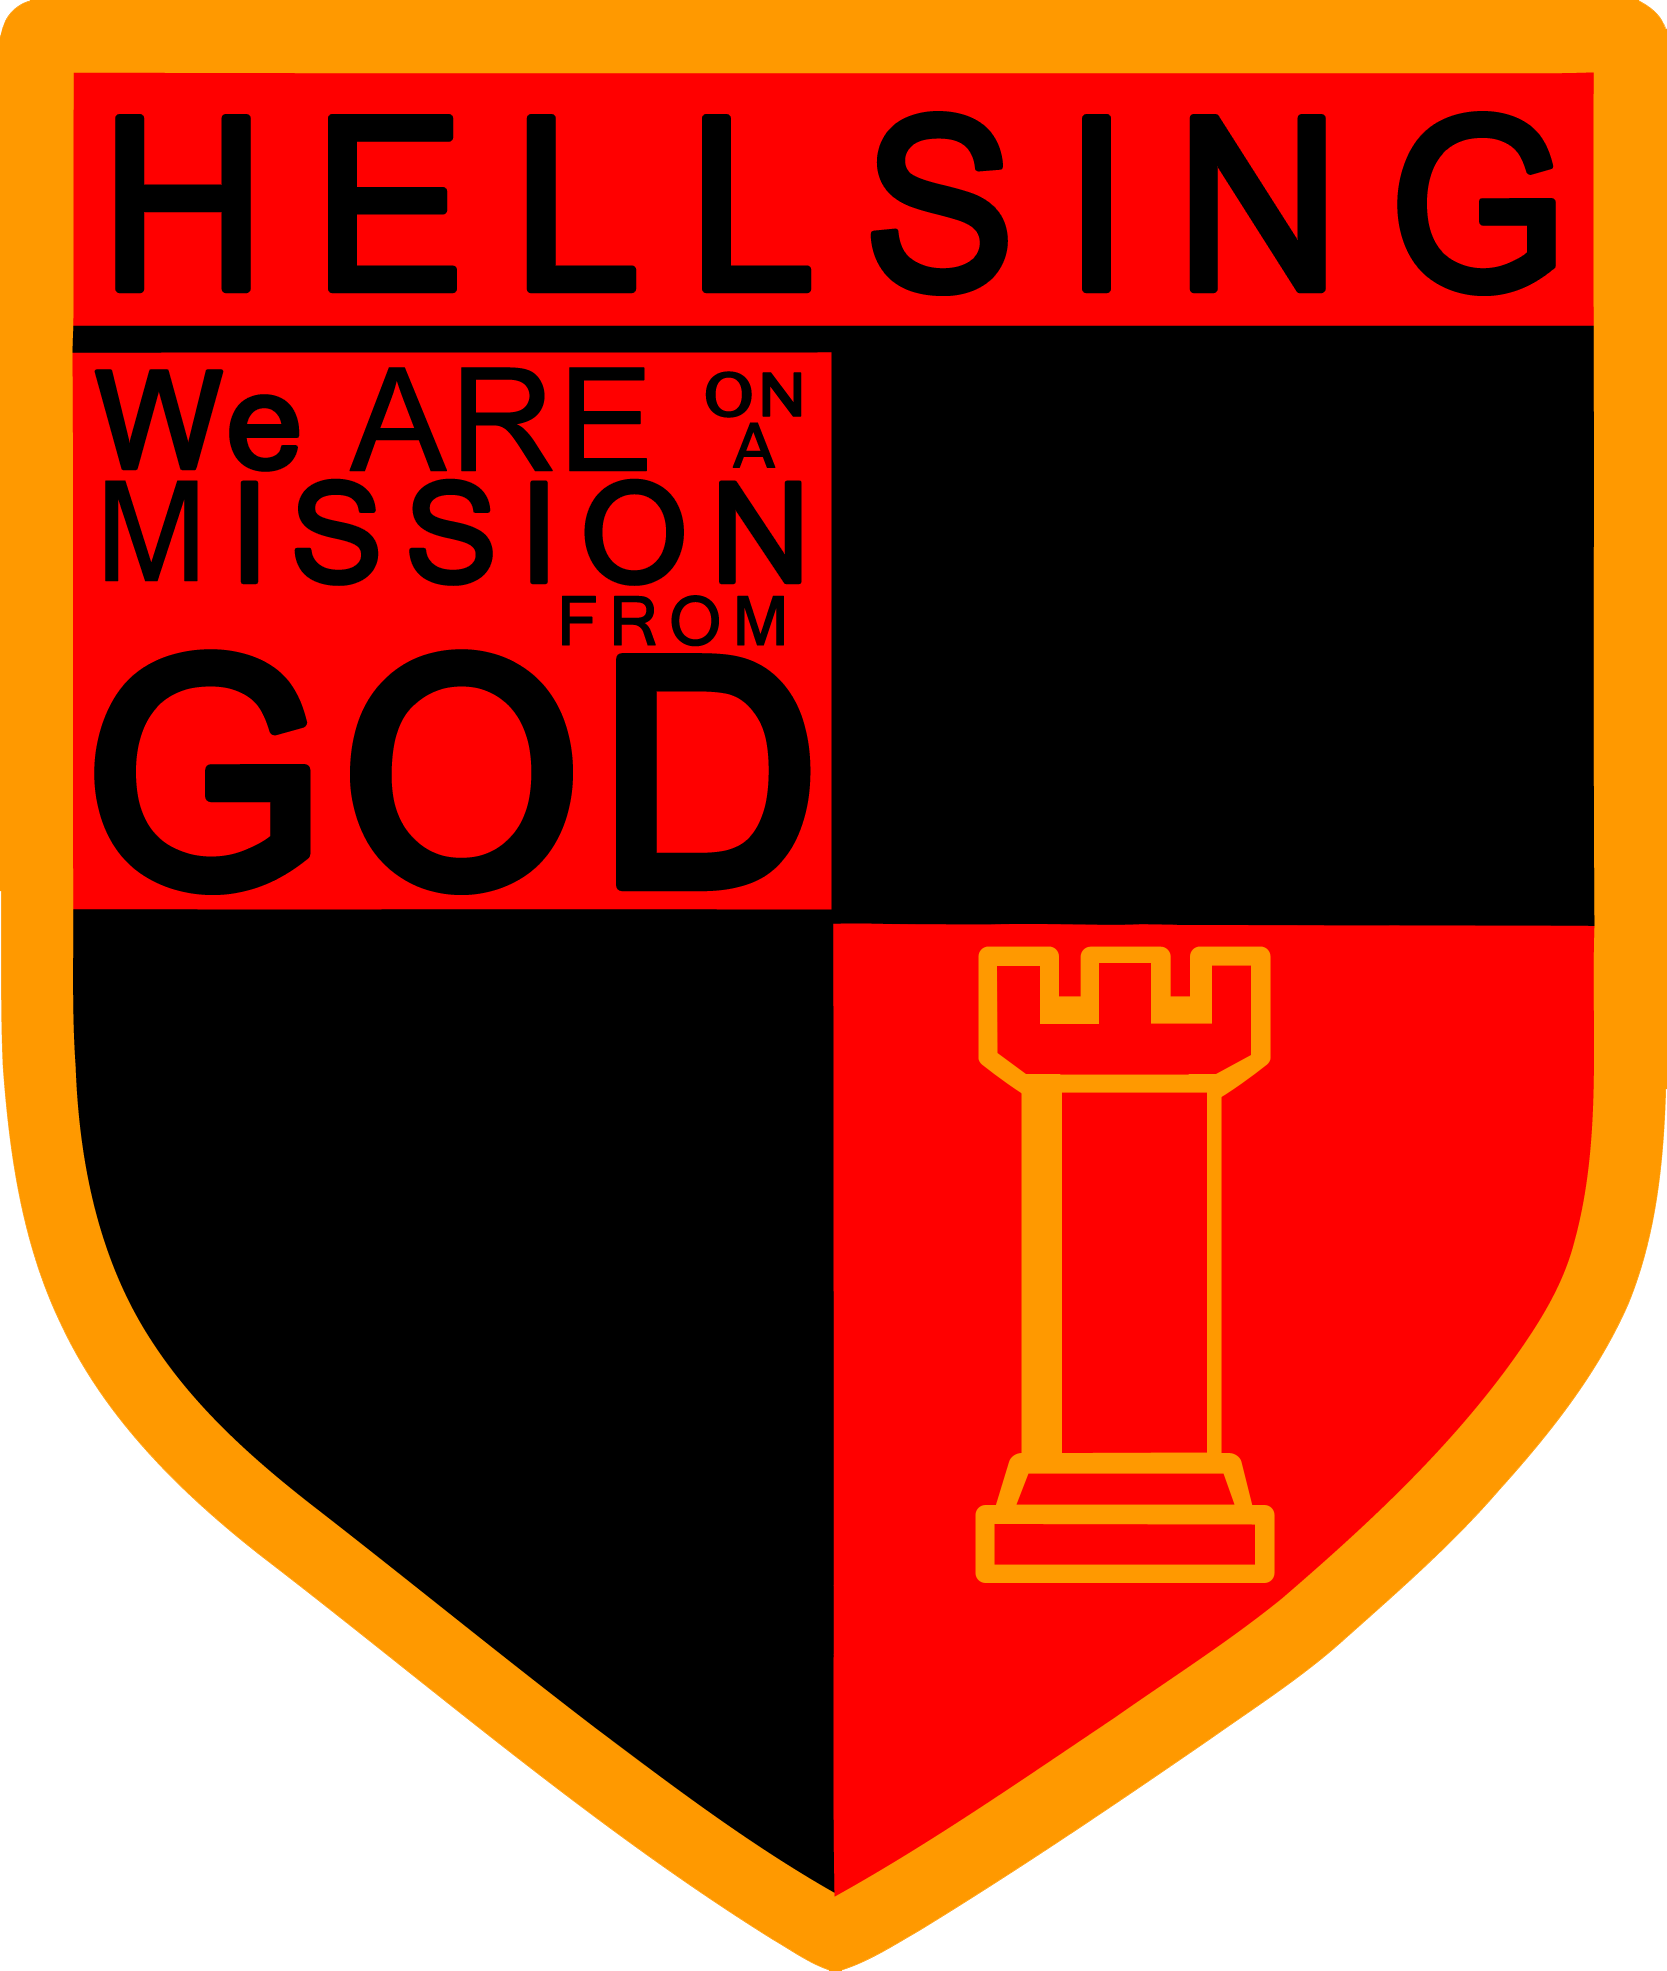 Hellsing Organization Hellsing Wiki Fandom Powered By Wikia